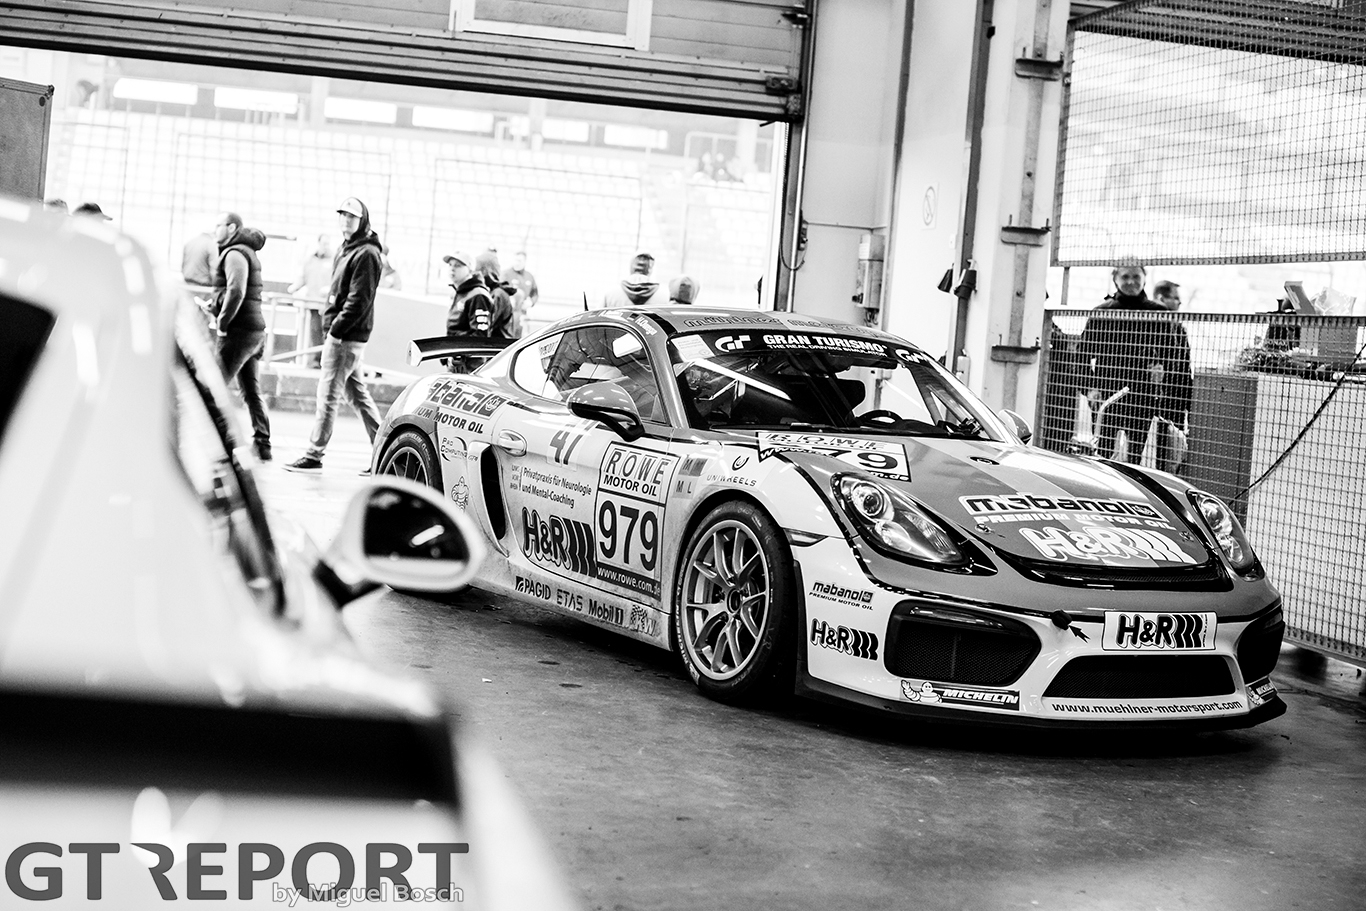 VLN Probe- Eindstalltag. Nürburgring, DE. 18 March 2017. ©Miguel Bosch/GTXM.media/GT REPORT.